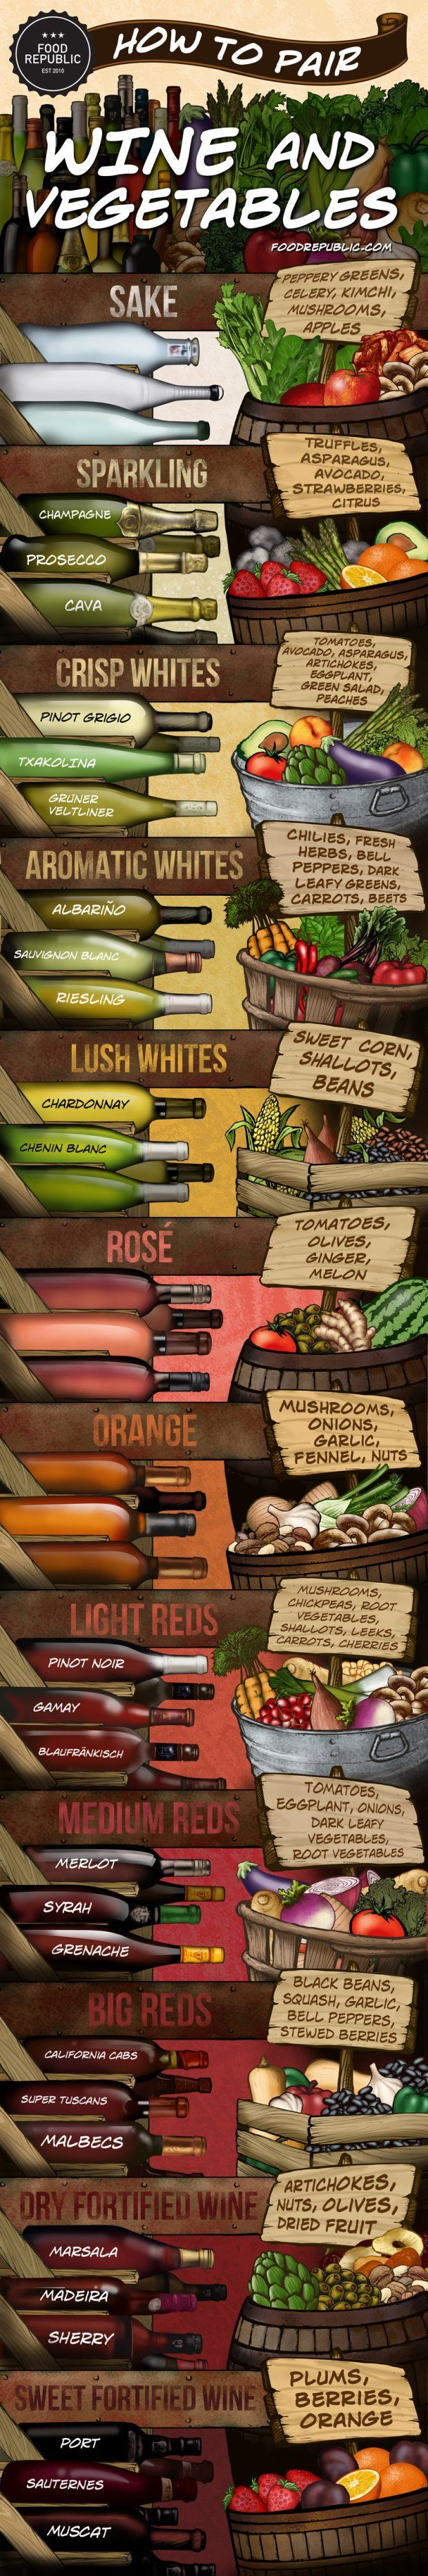 Paid a visit to the local farmer's market, now what? Wine Infographic: How To Pair Wine And Vegetables